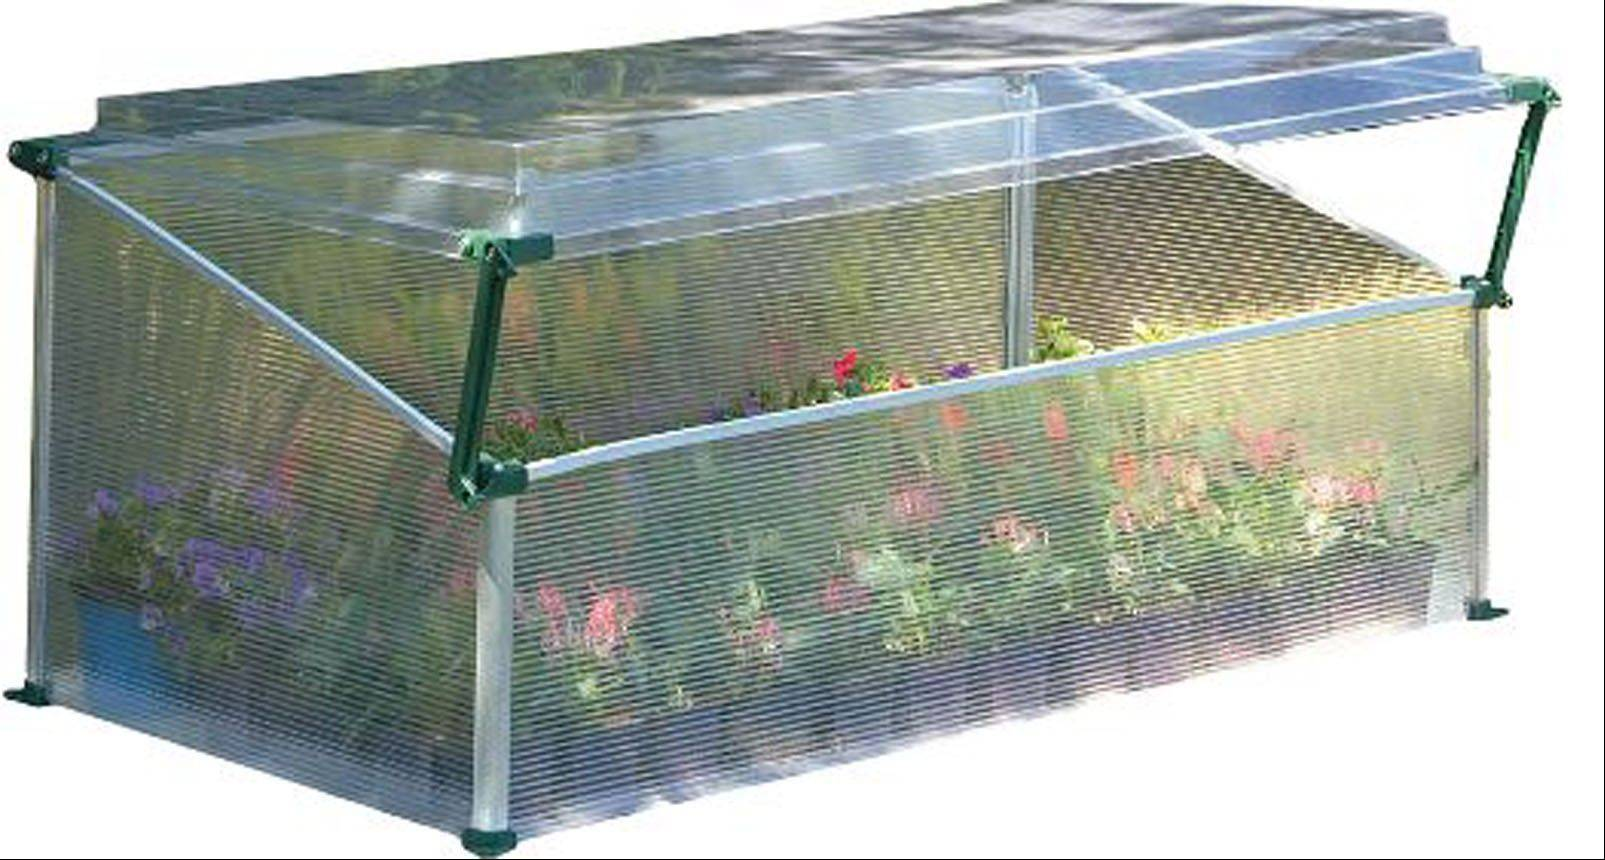 A cold frame is an option for some who desire the four-season capabilities of a typical greenhouse. This version, a Poly-Tex Cold Frame Greenhouse, is selling for $60 online at cabelas.com